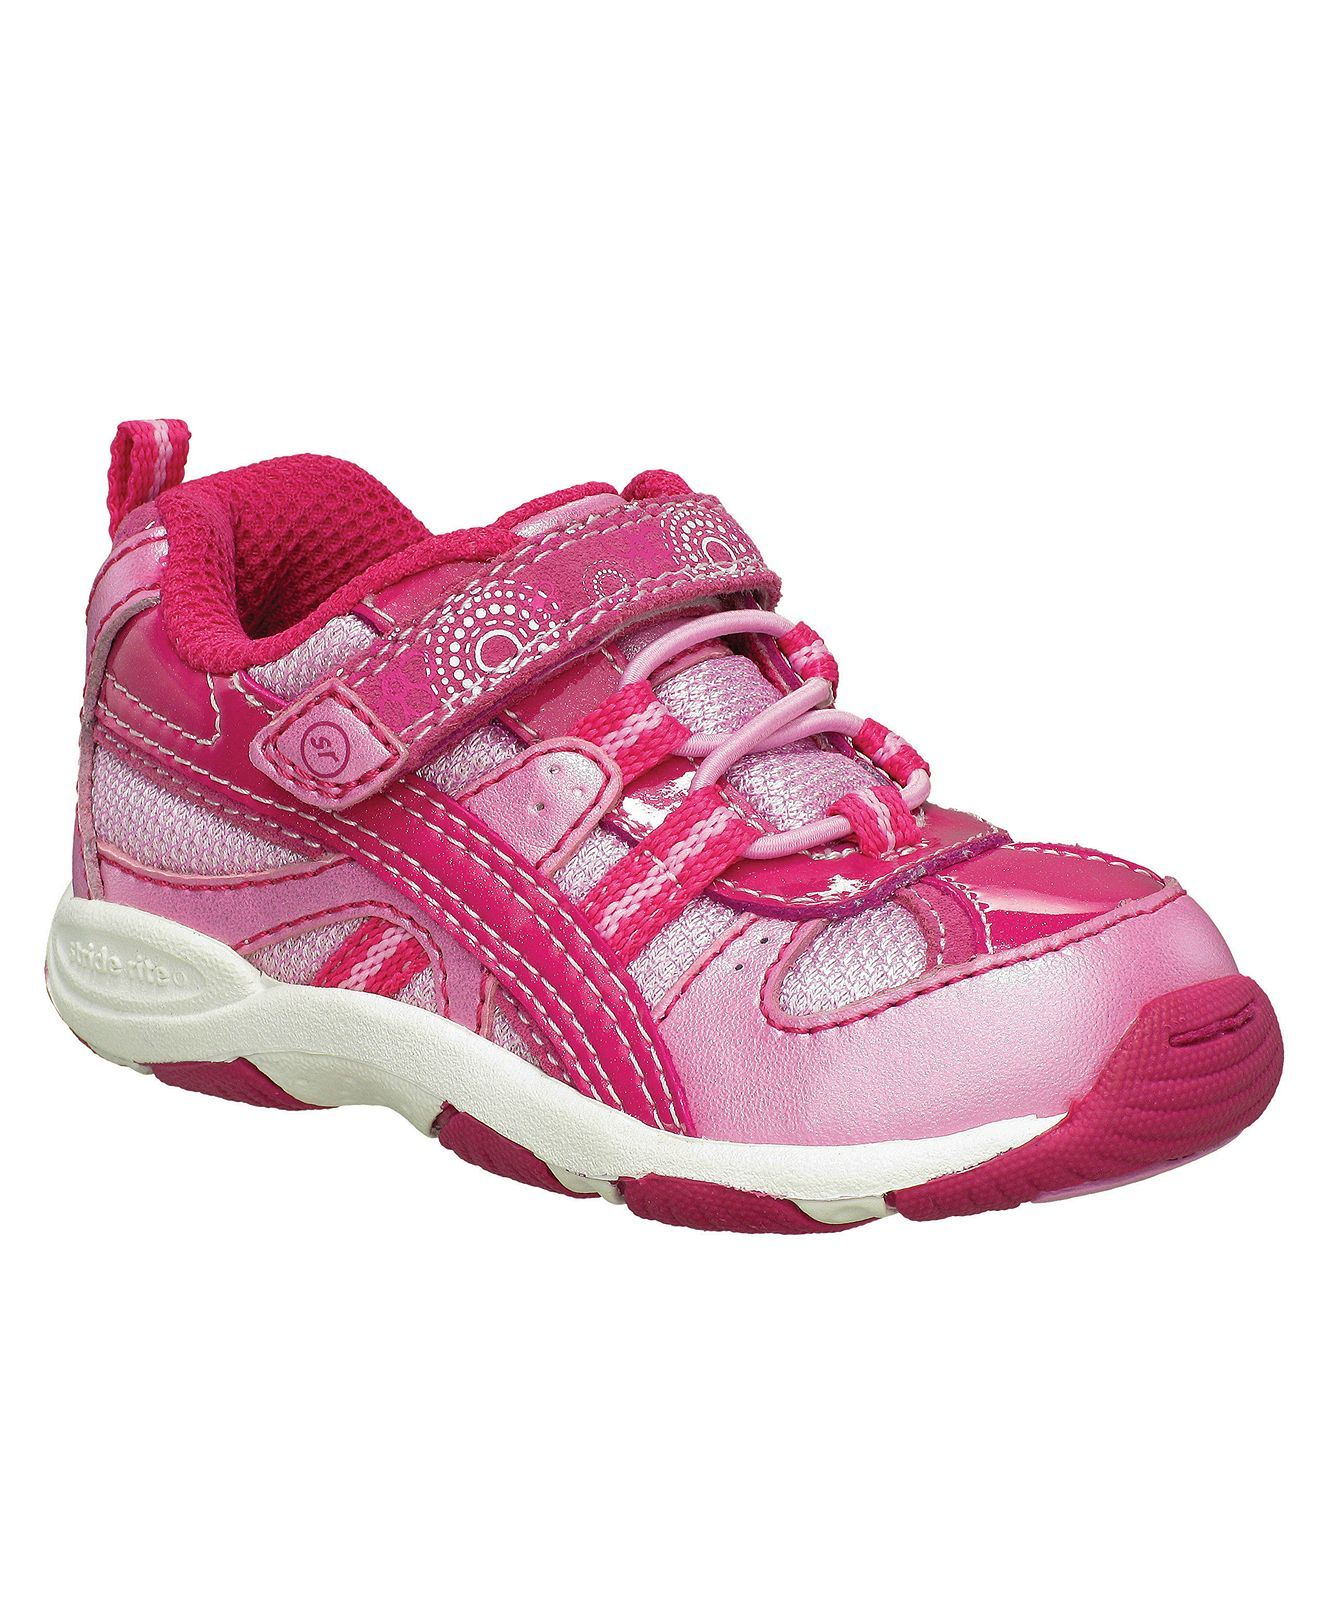 Stride Rite Kids Shoes Toddler Girls Milli Sneakers Kids Macy s